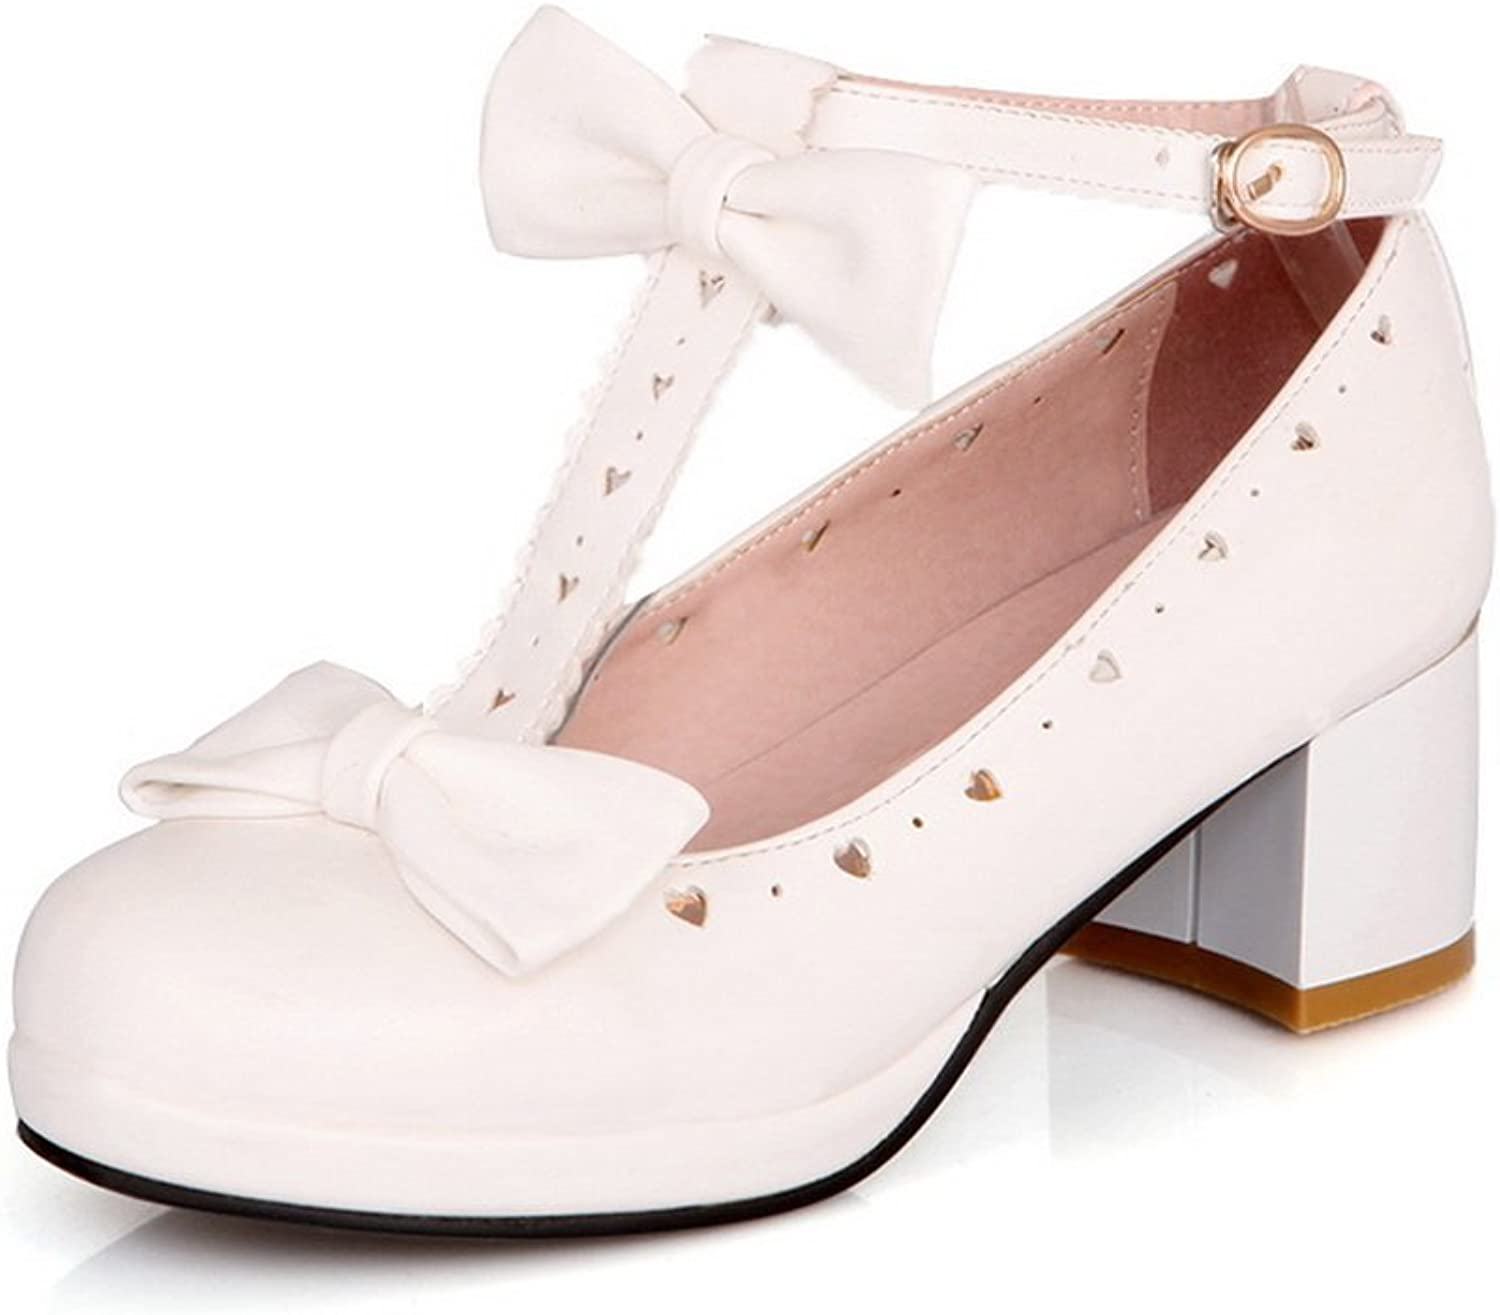 1TO9 Womens Buckle Spun gold Bowknot Round-Toe White Rubber Pumps-shoes - 7.5 B(M) US